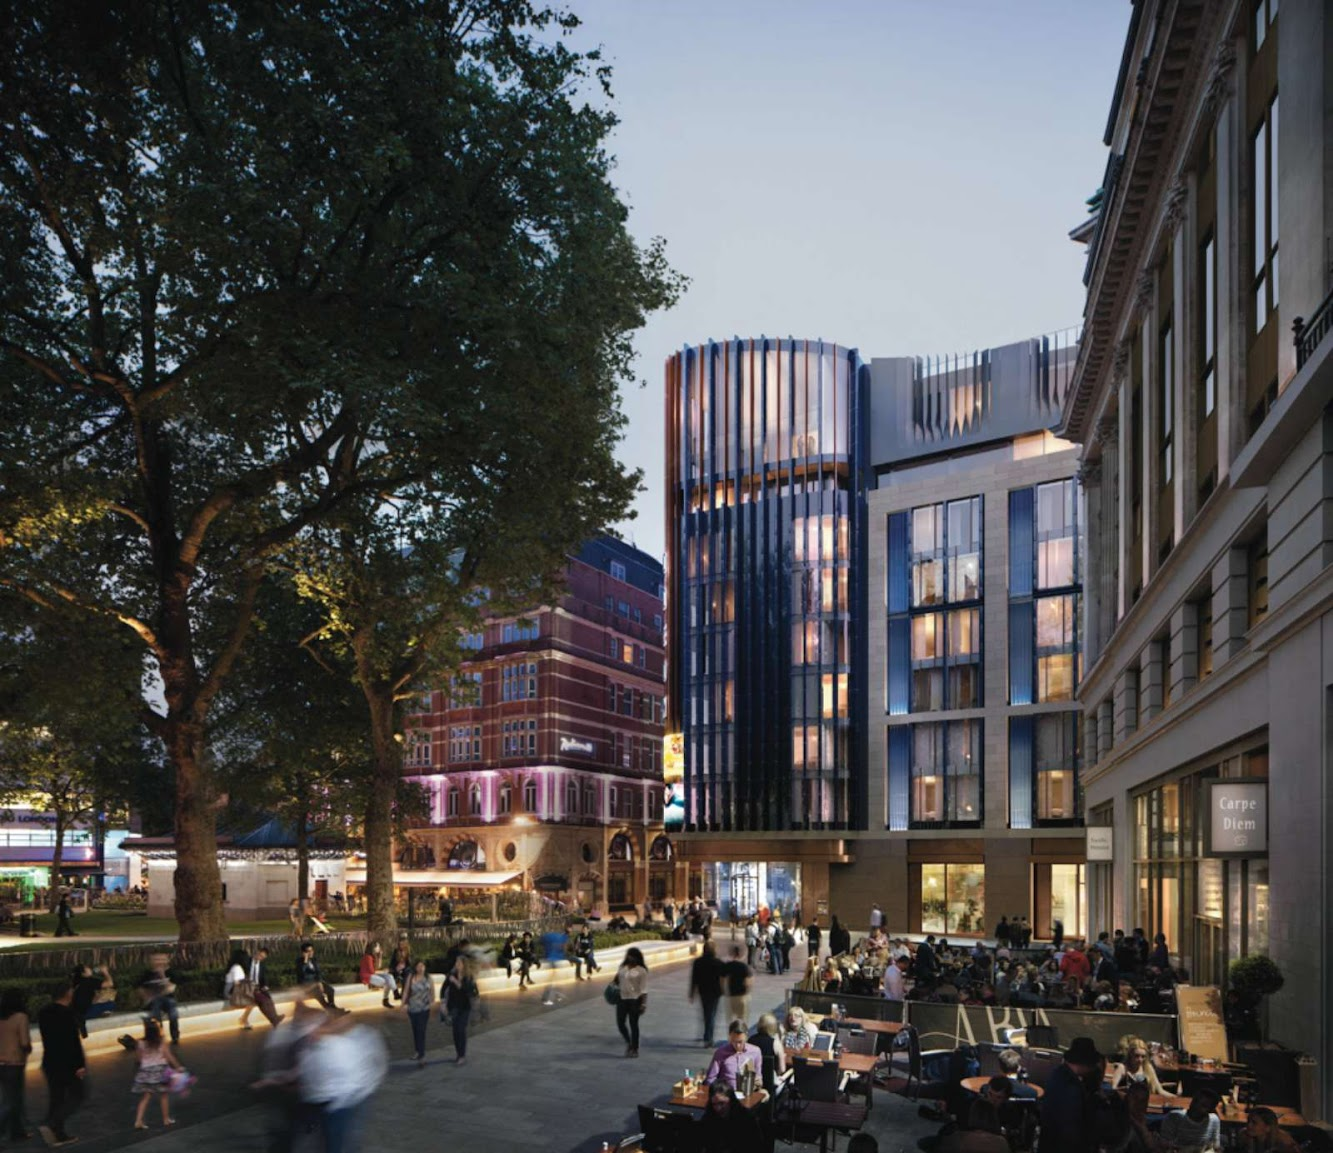 Londra, Regno Unito: Hotel Plans in London'S Leicester Square by Woods Bagot